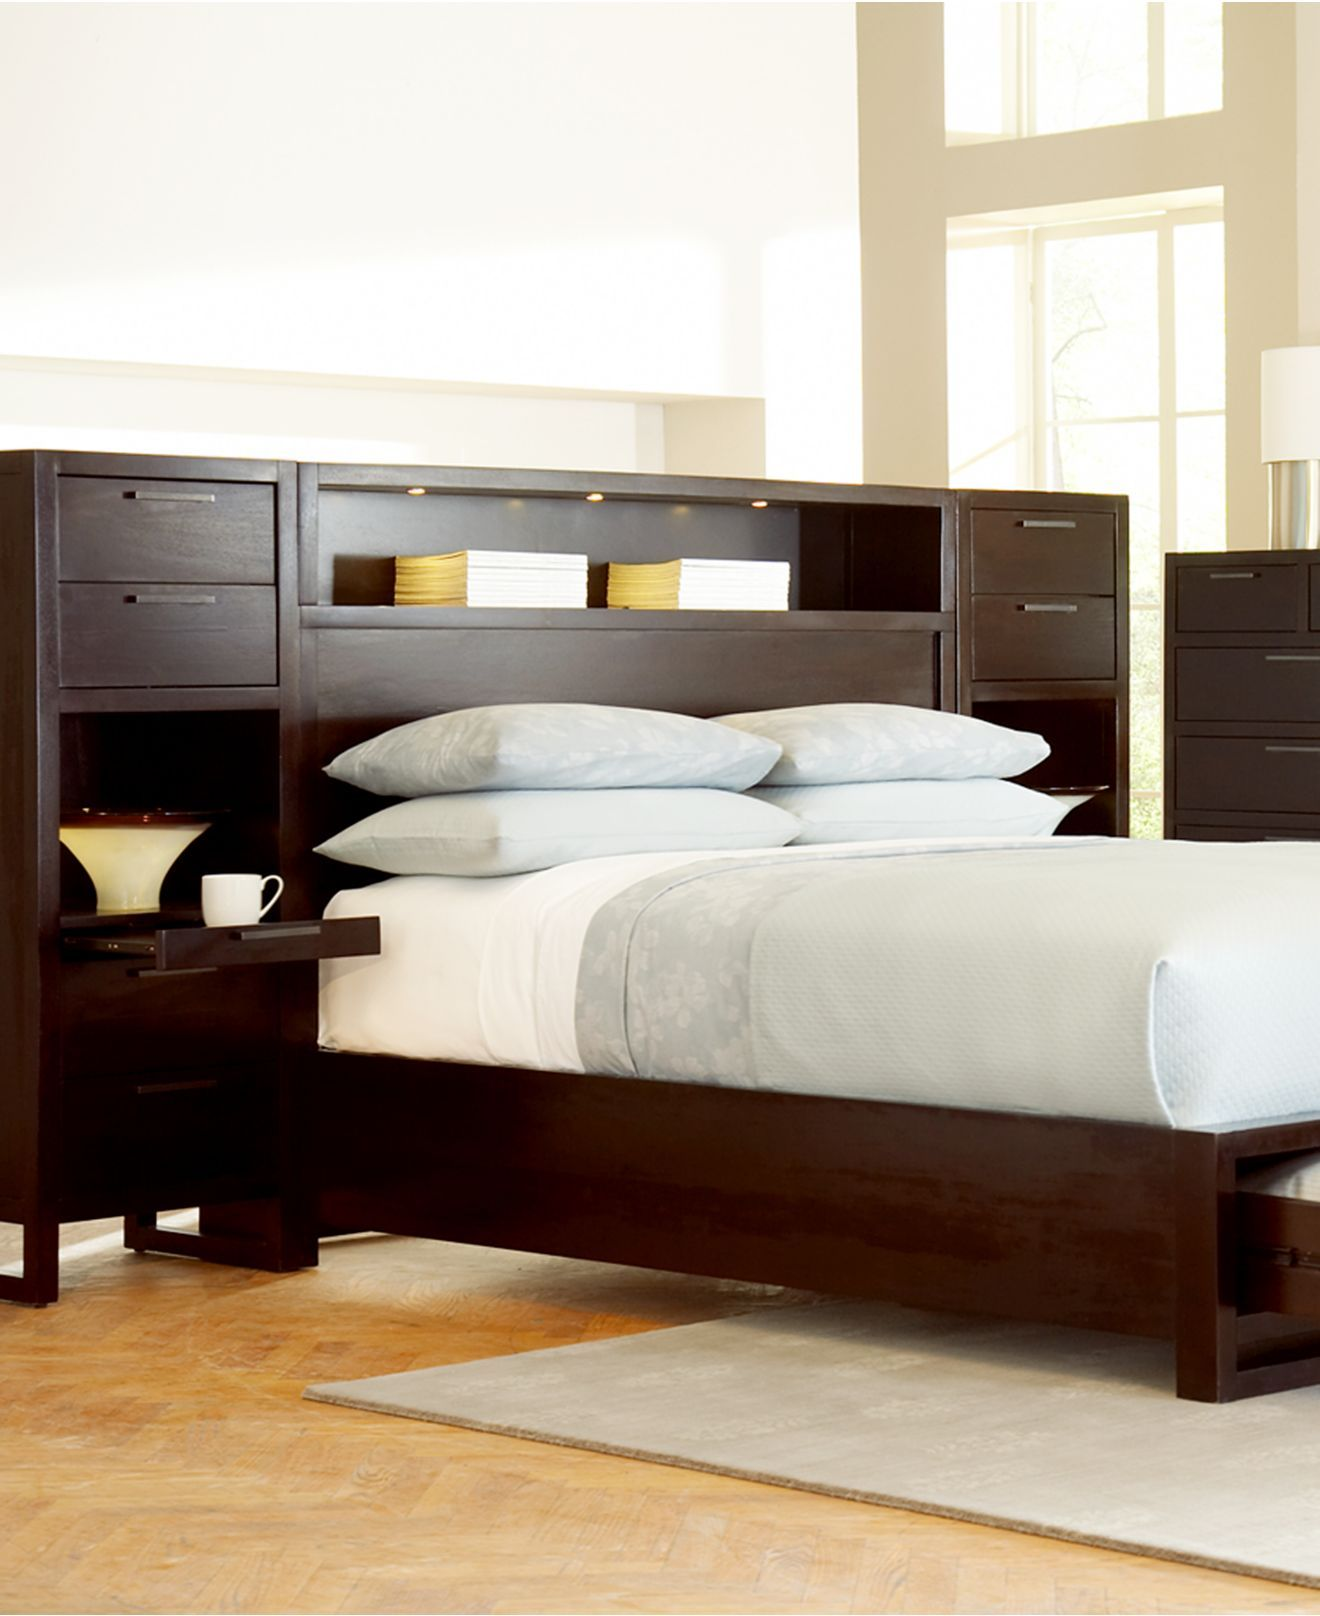 Tahoe Noir Wall Bedroom Furniture Sets & Pieces - Bedroom ...